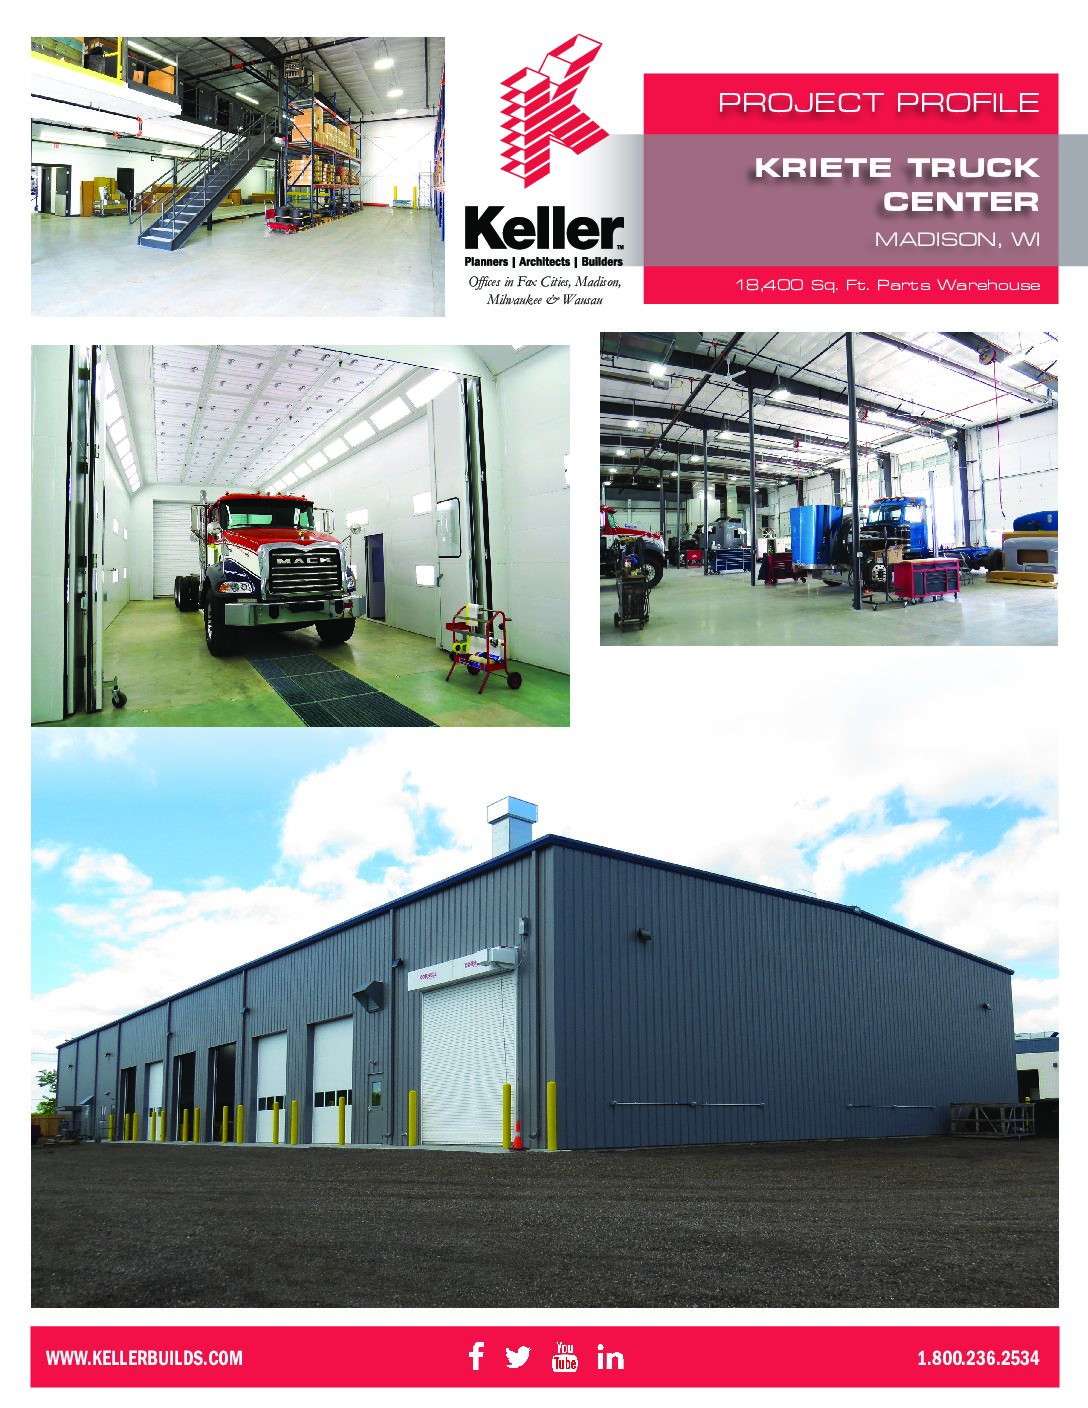 Kriete Truck Center